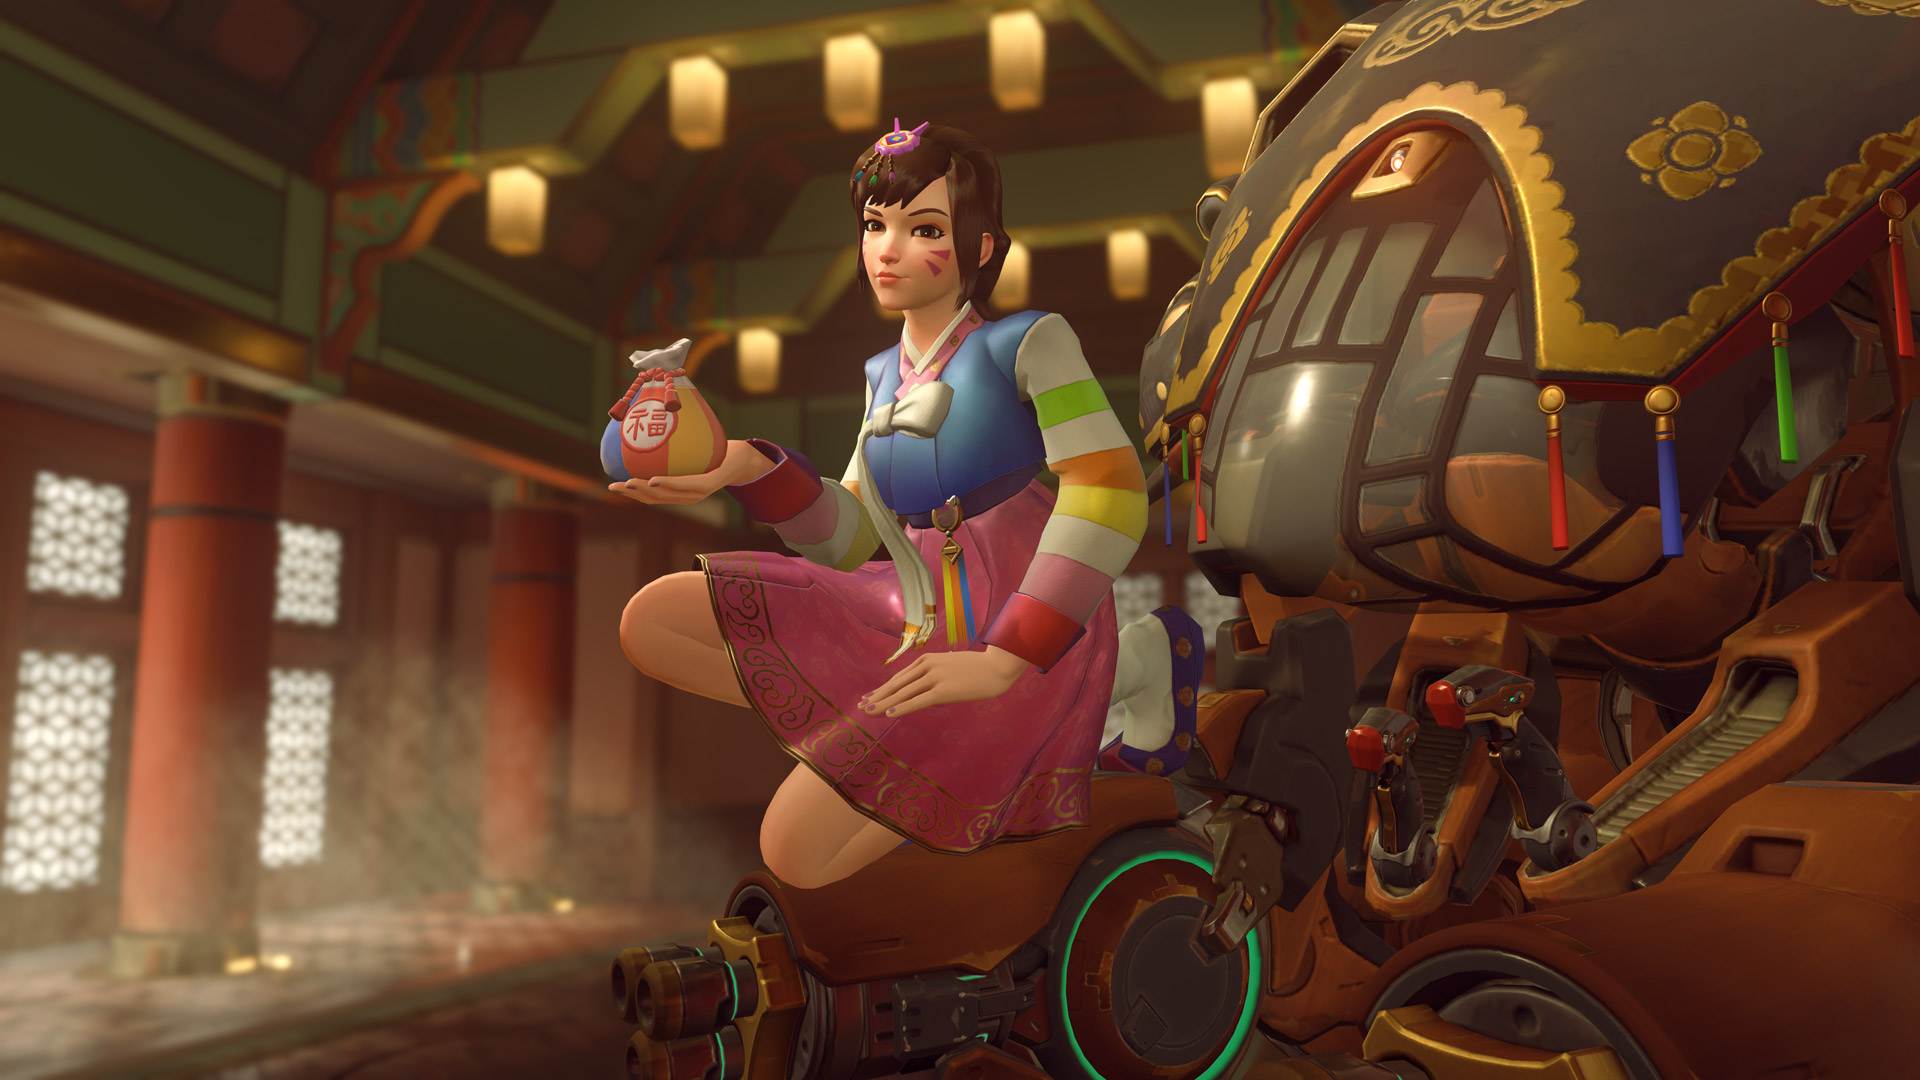 Overwatch character image in lunar new year event